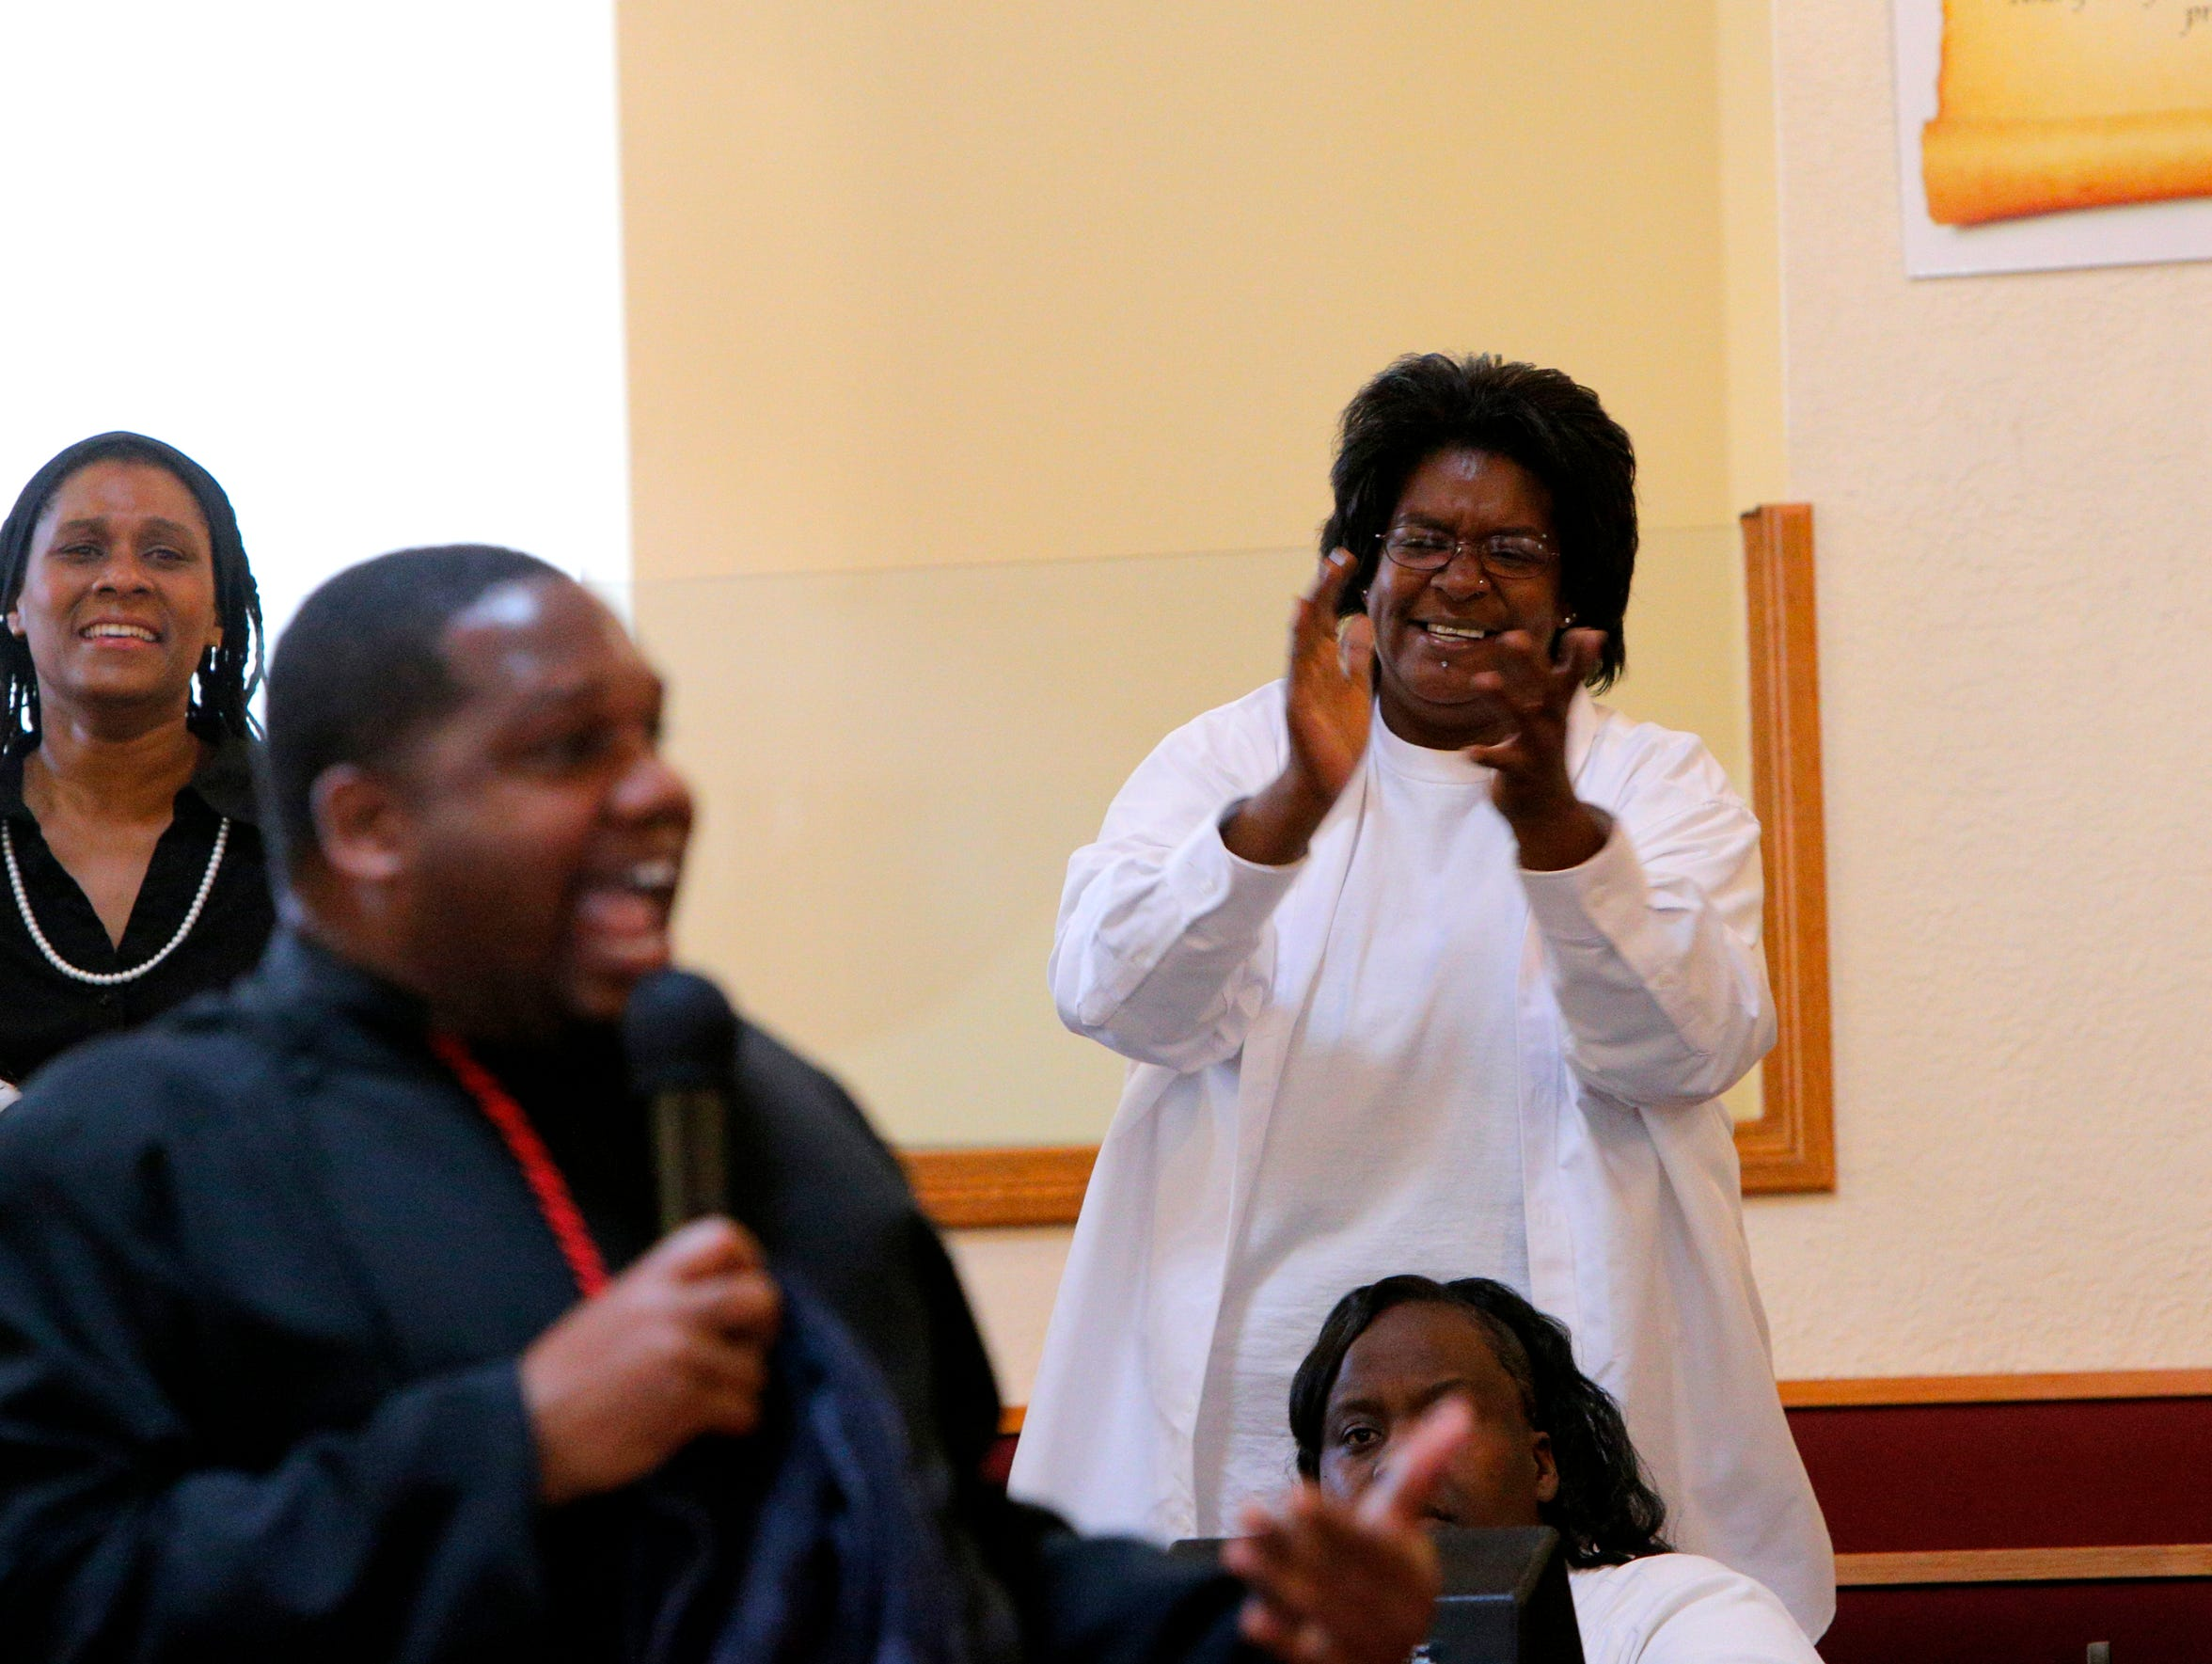 Yolanda Harraway applauds during a sermon at church.